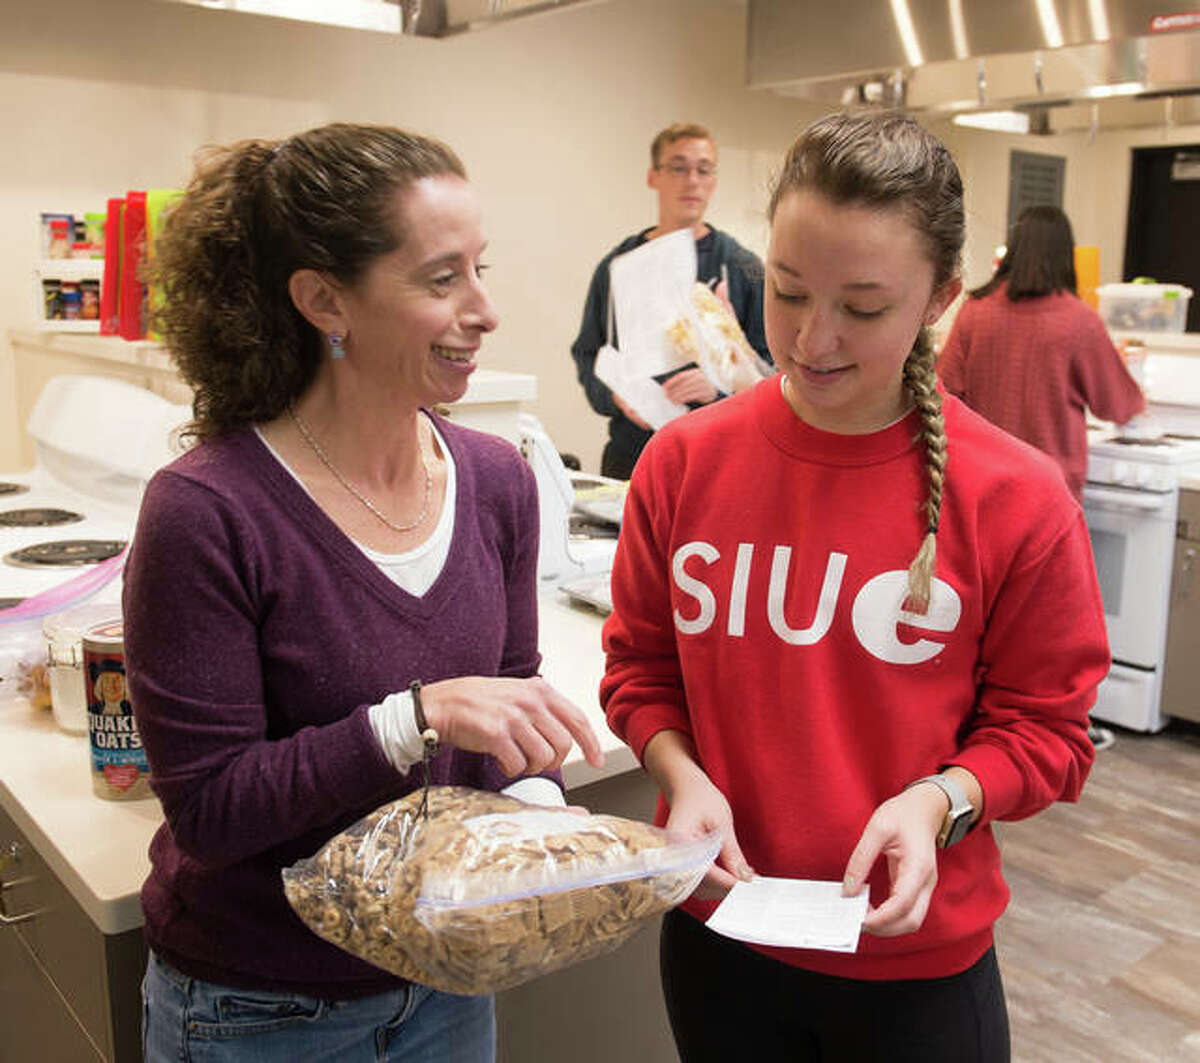 SIUE Nutrition Center lab class professor Kathy Mora, left, with Annalise Ankney in November 2017.